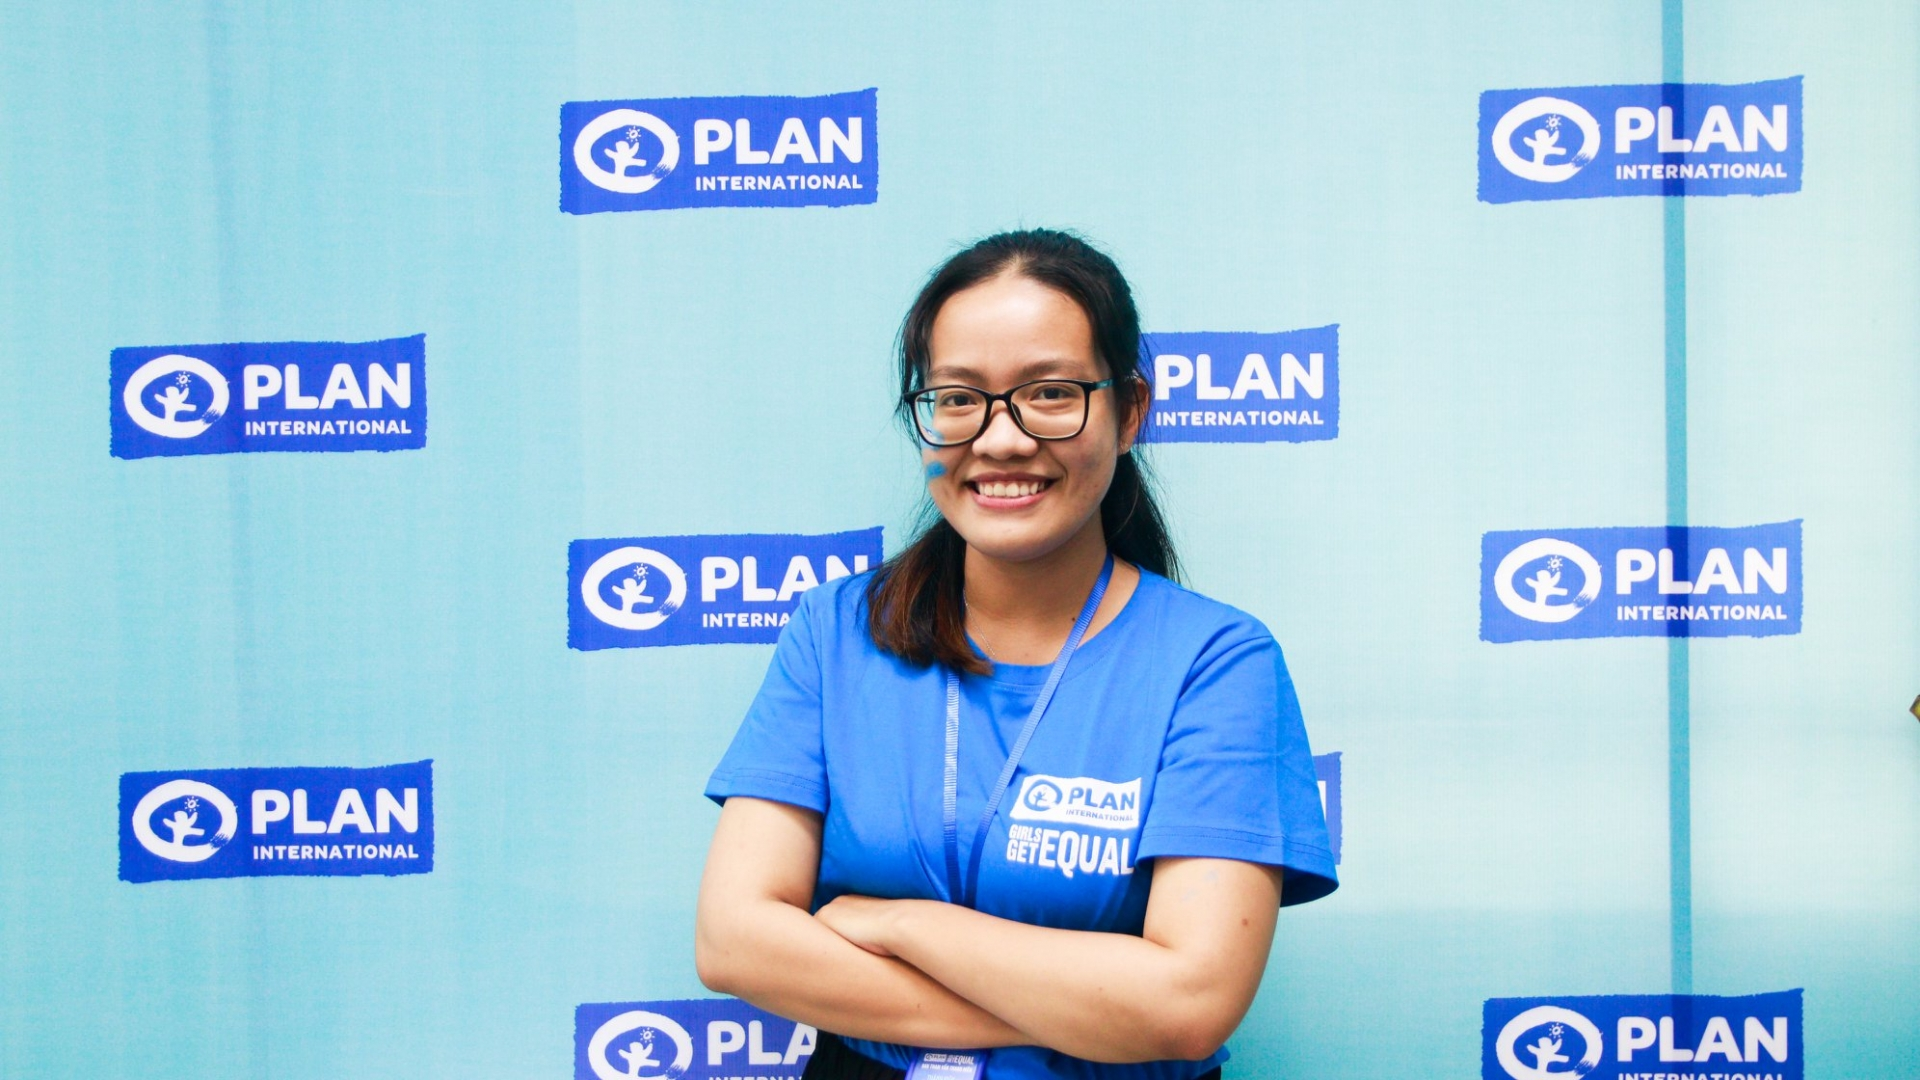 vietnamese youth spreads message of encouragement for girls across the world